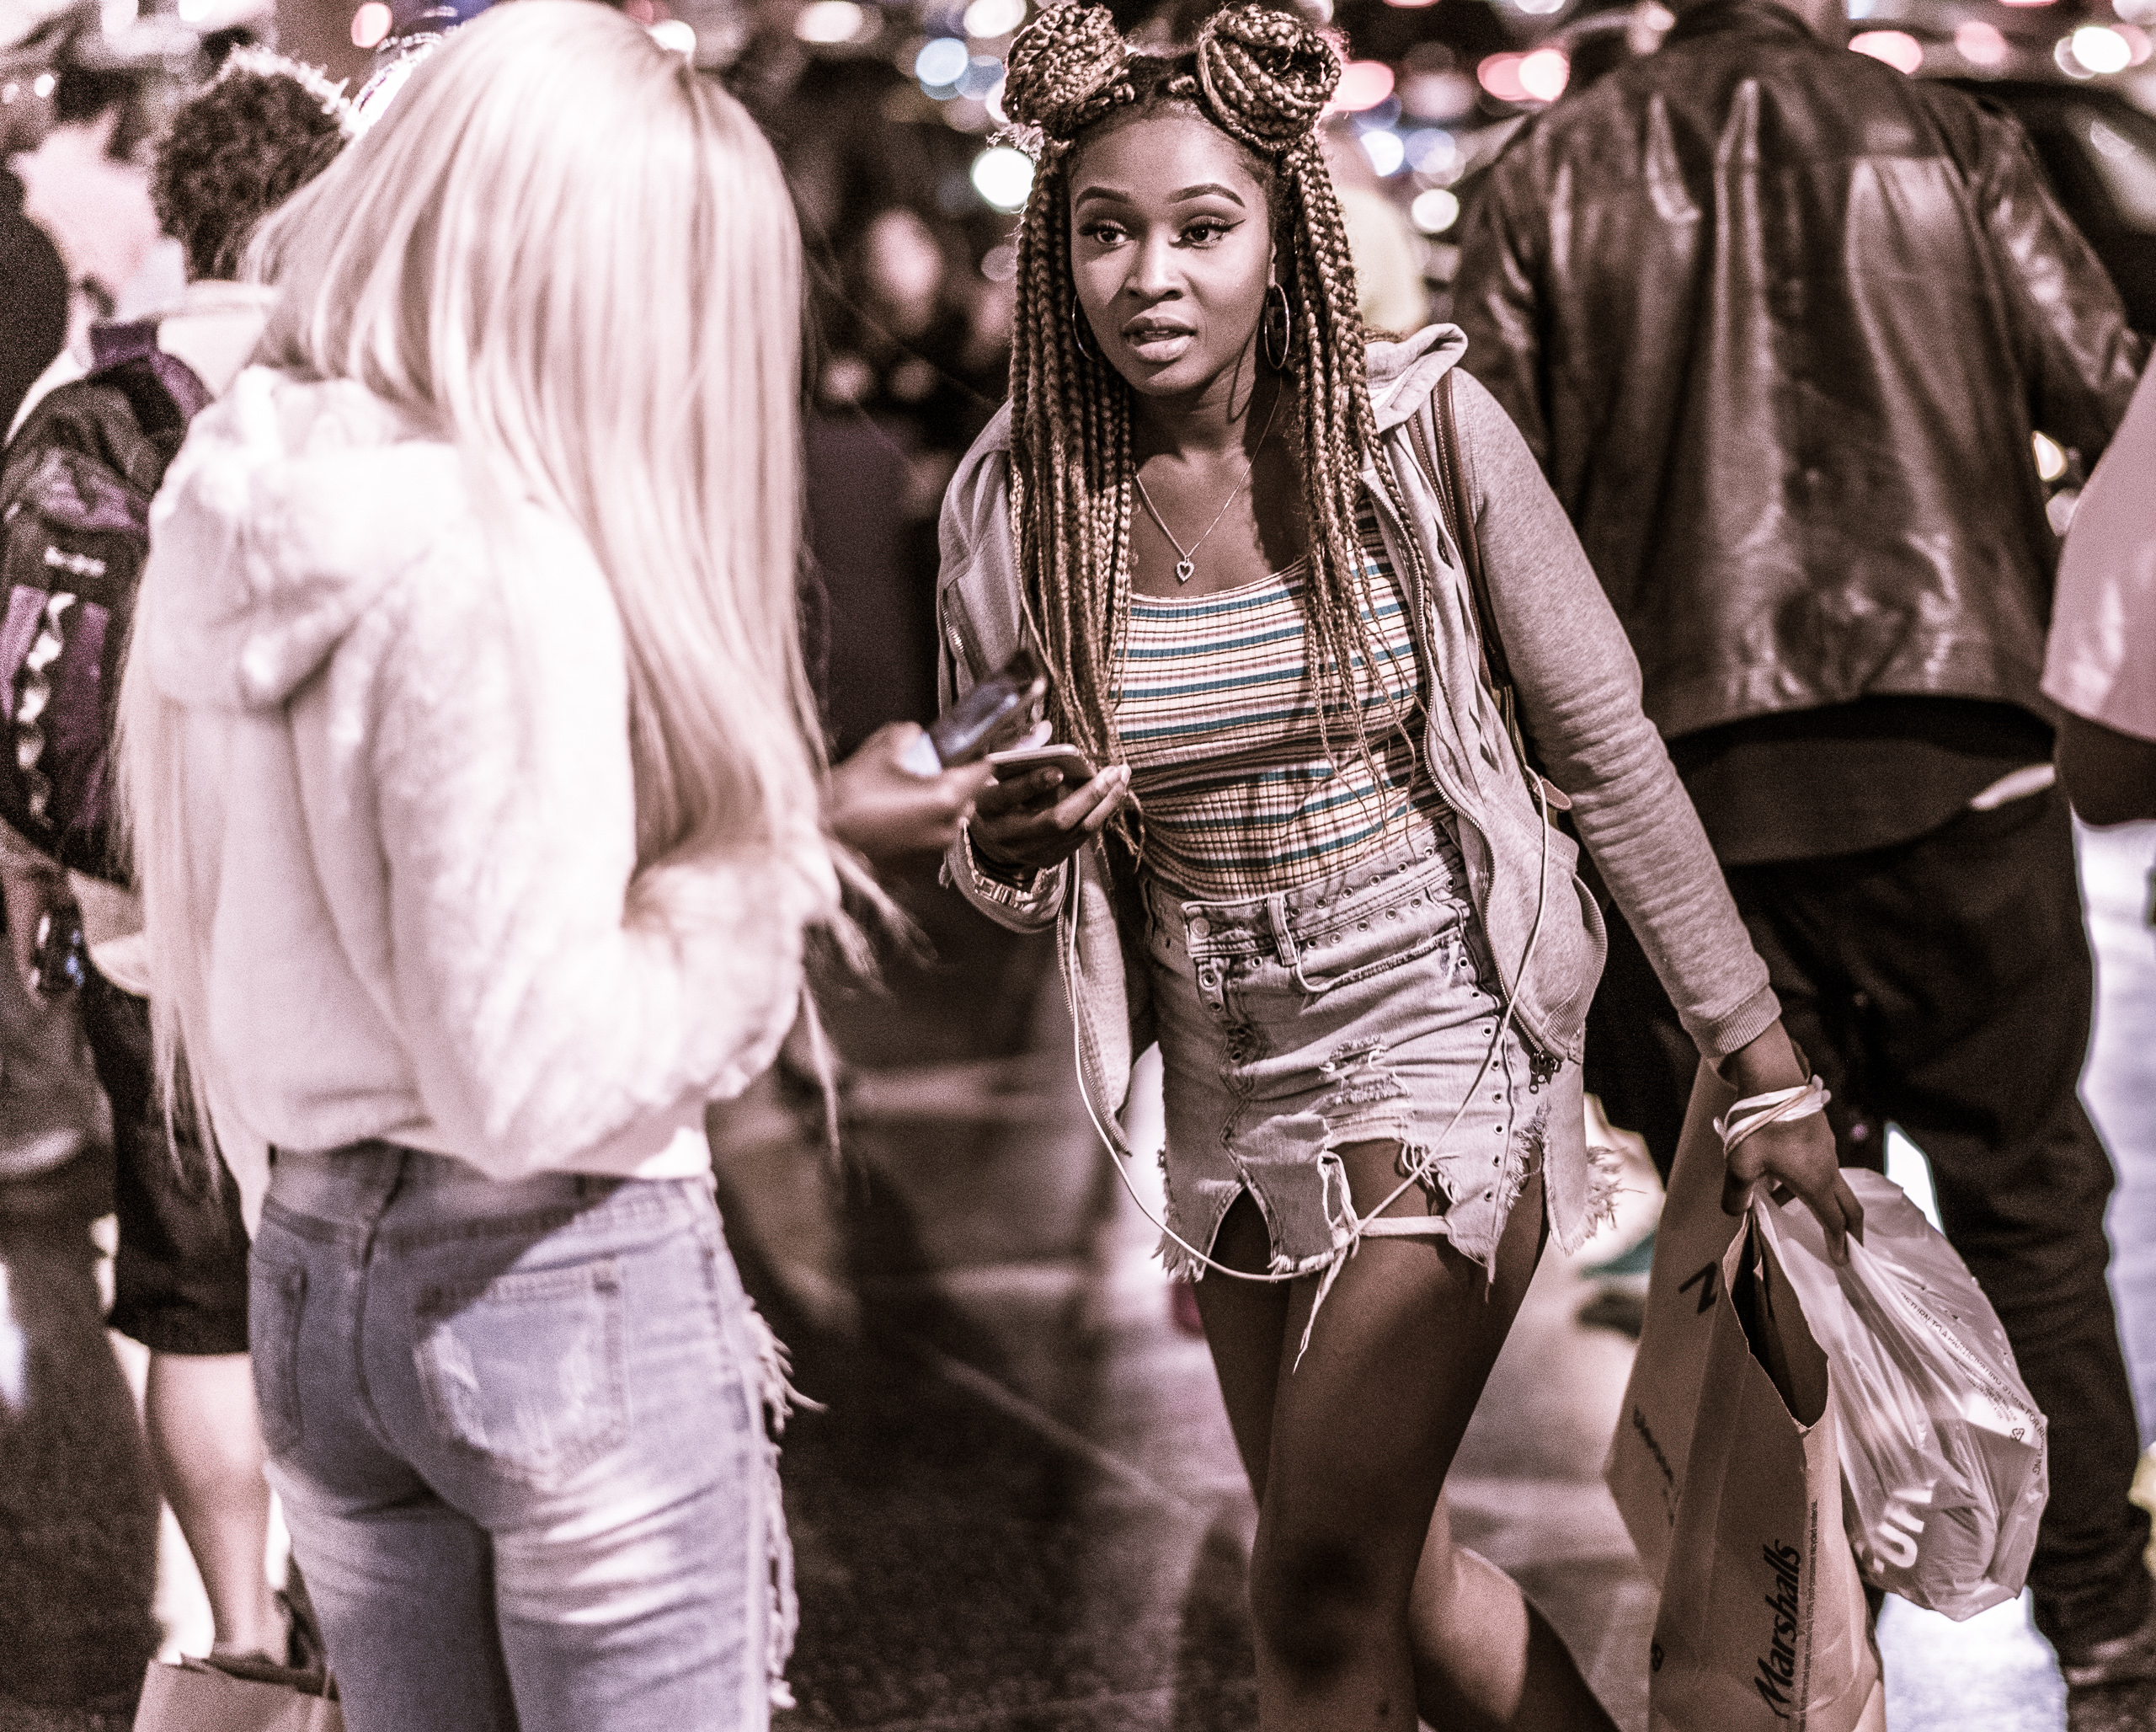 a woman with heavily braided hair walks down Hollywood Blvd.